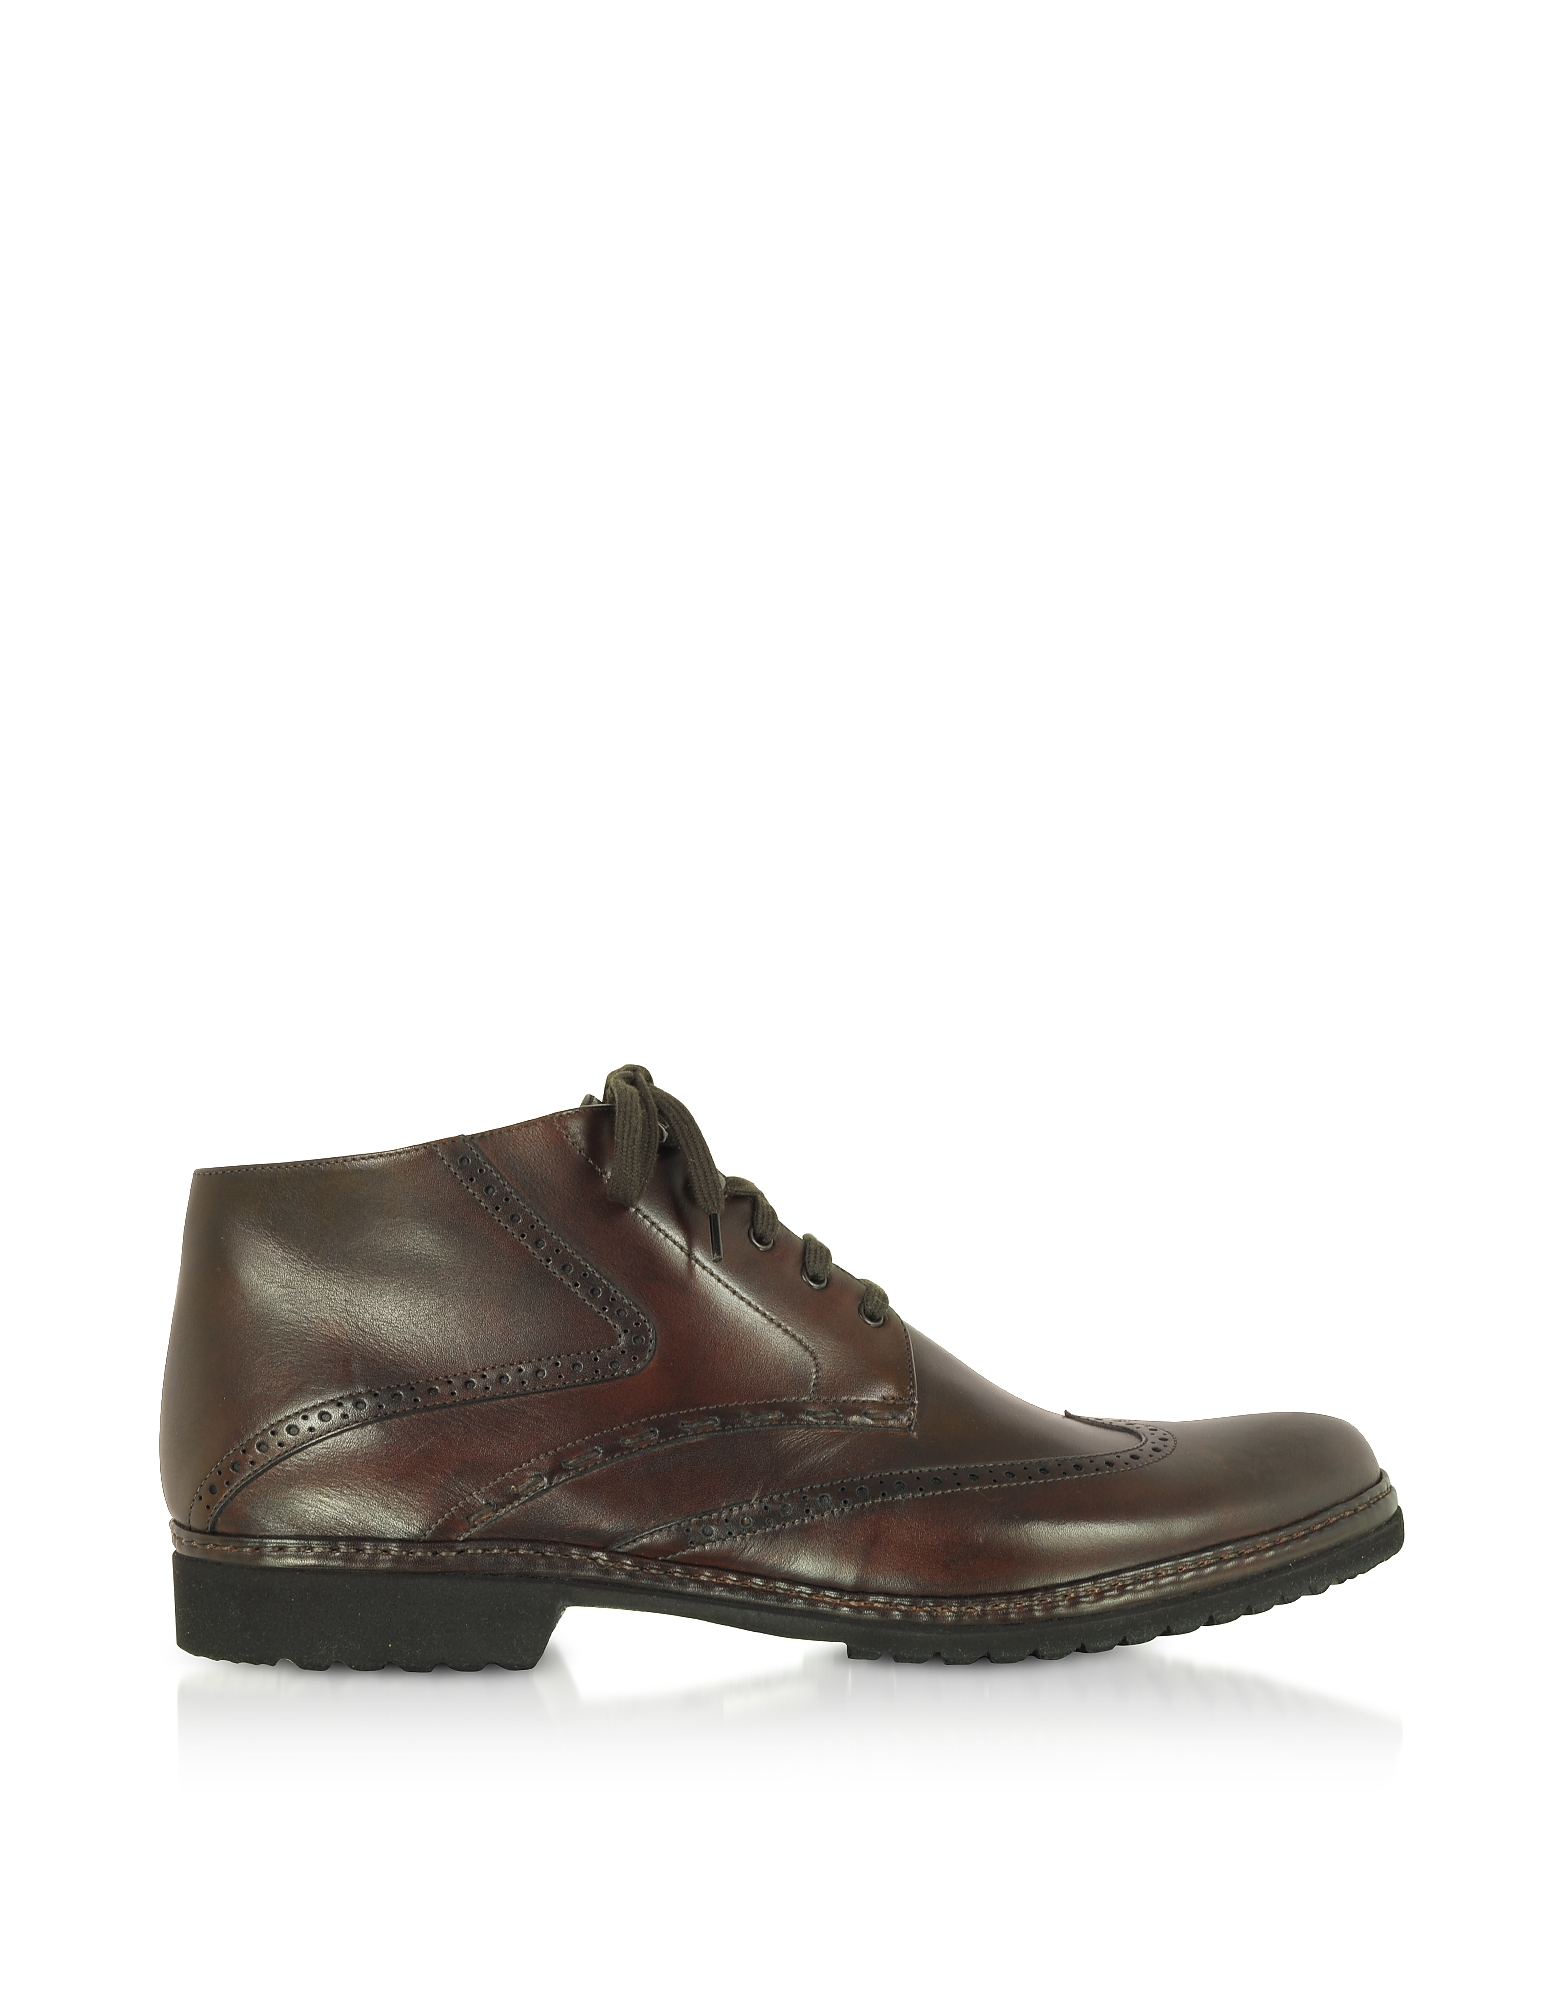 Pakerson Designer Shoes, Cocoa Handmade Italian Leather Wingtip Ankle Boots